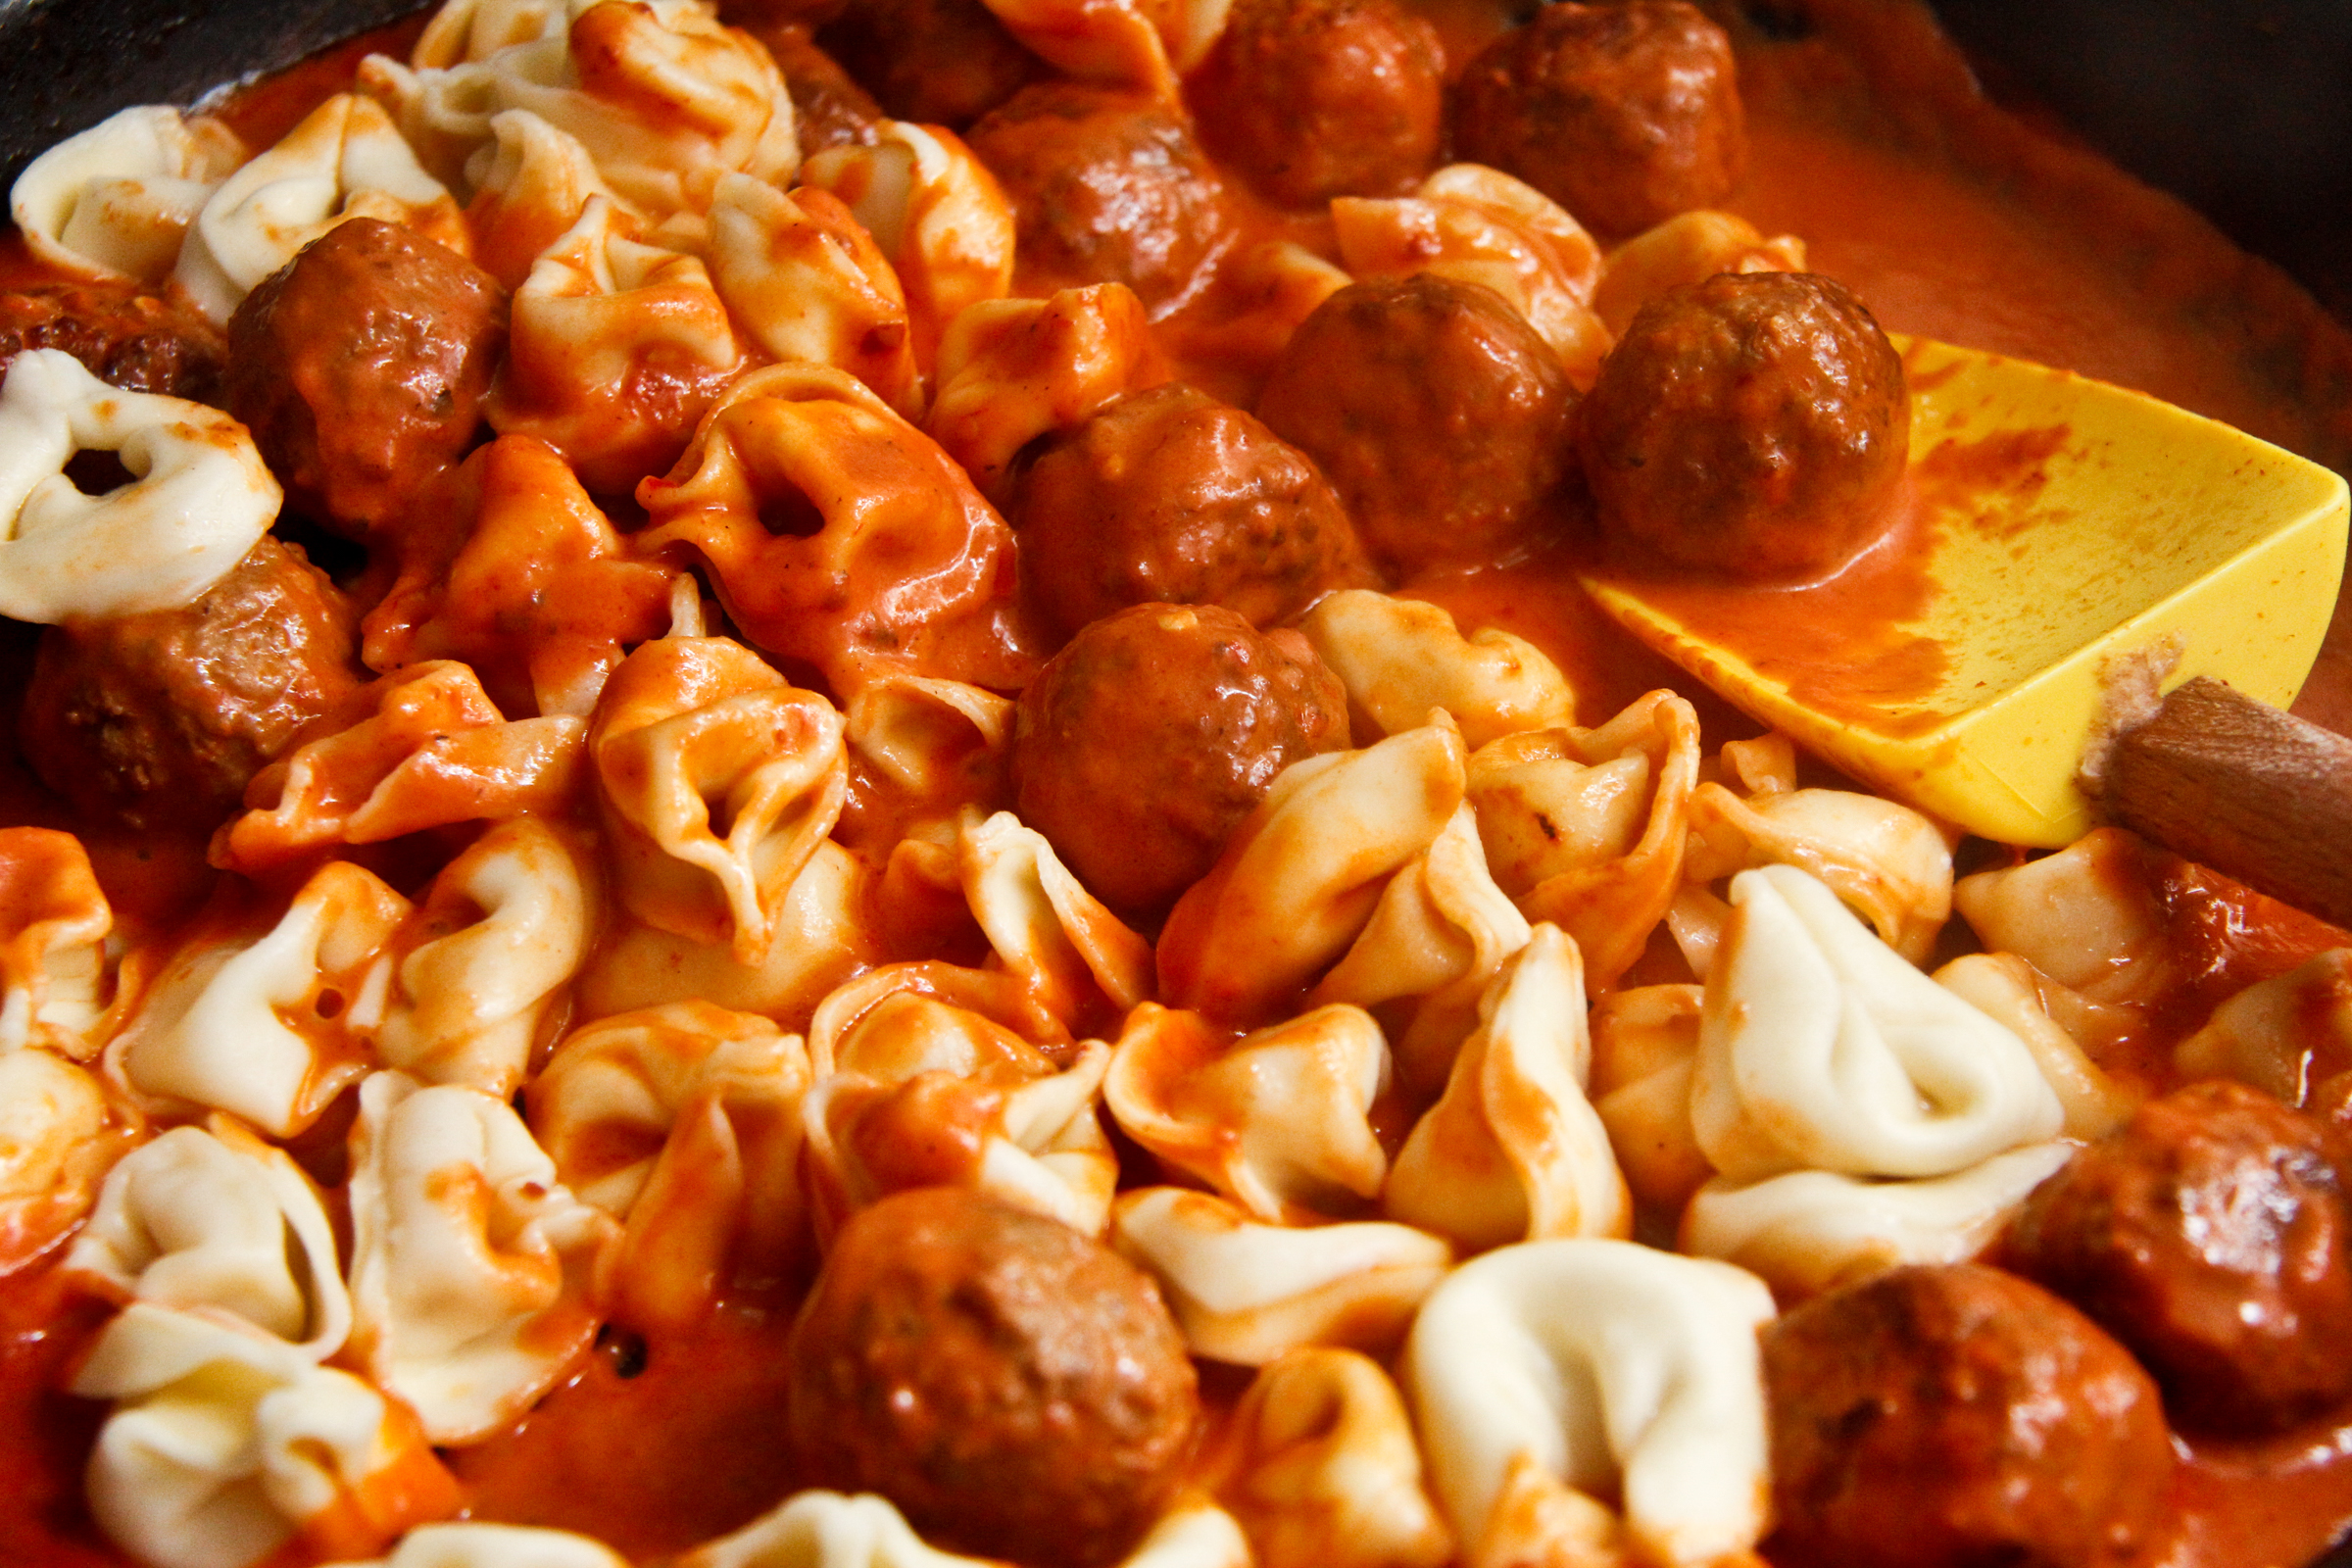 Easy Tortellini and Meatballs | ChefJulieYoon.com